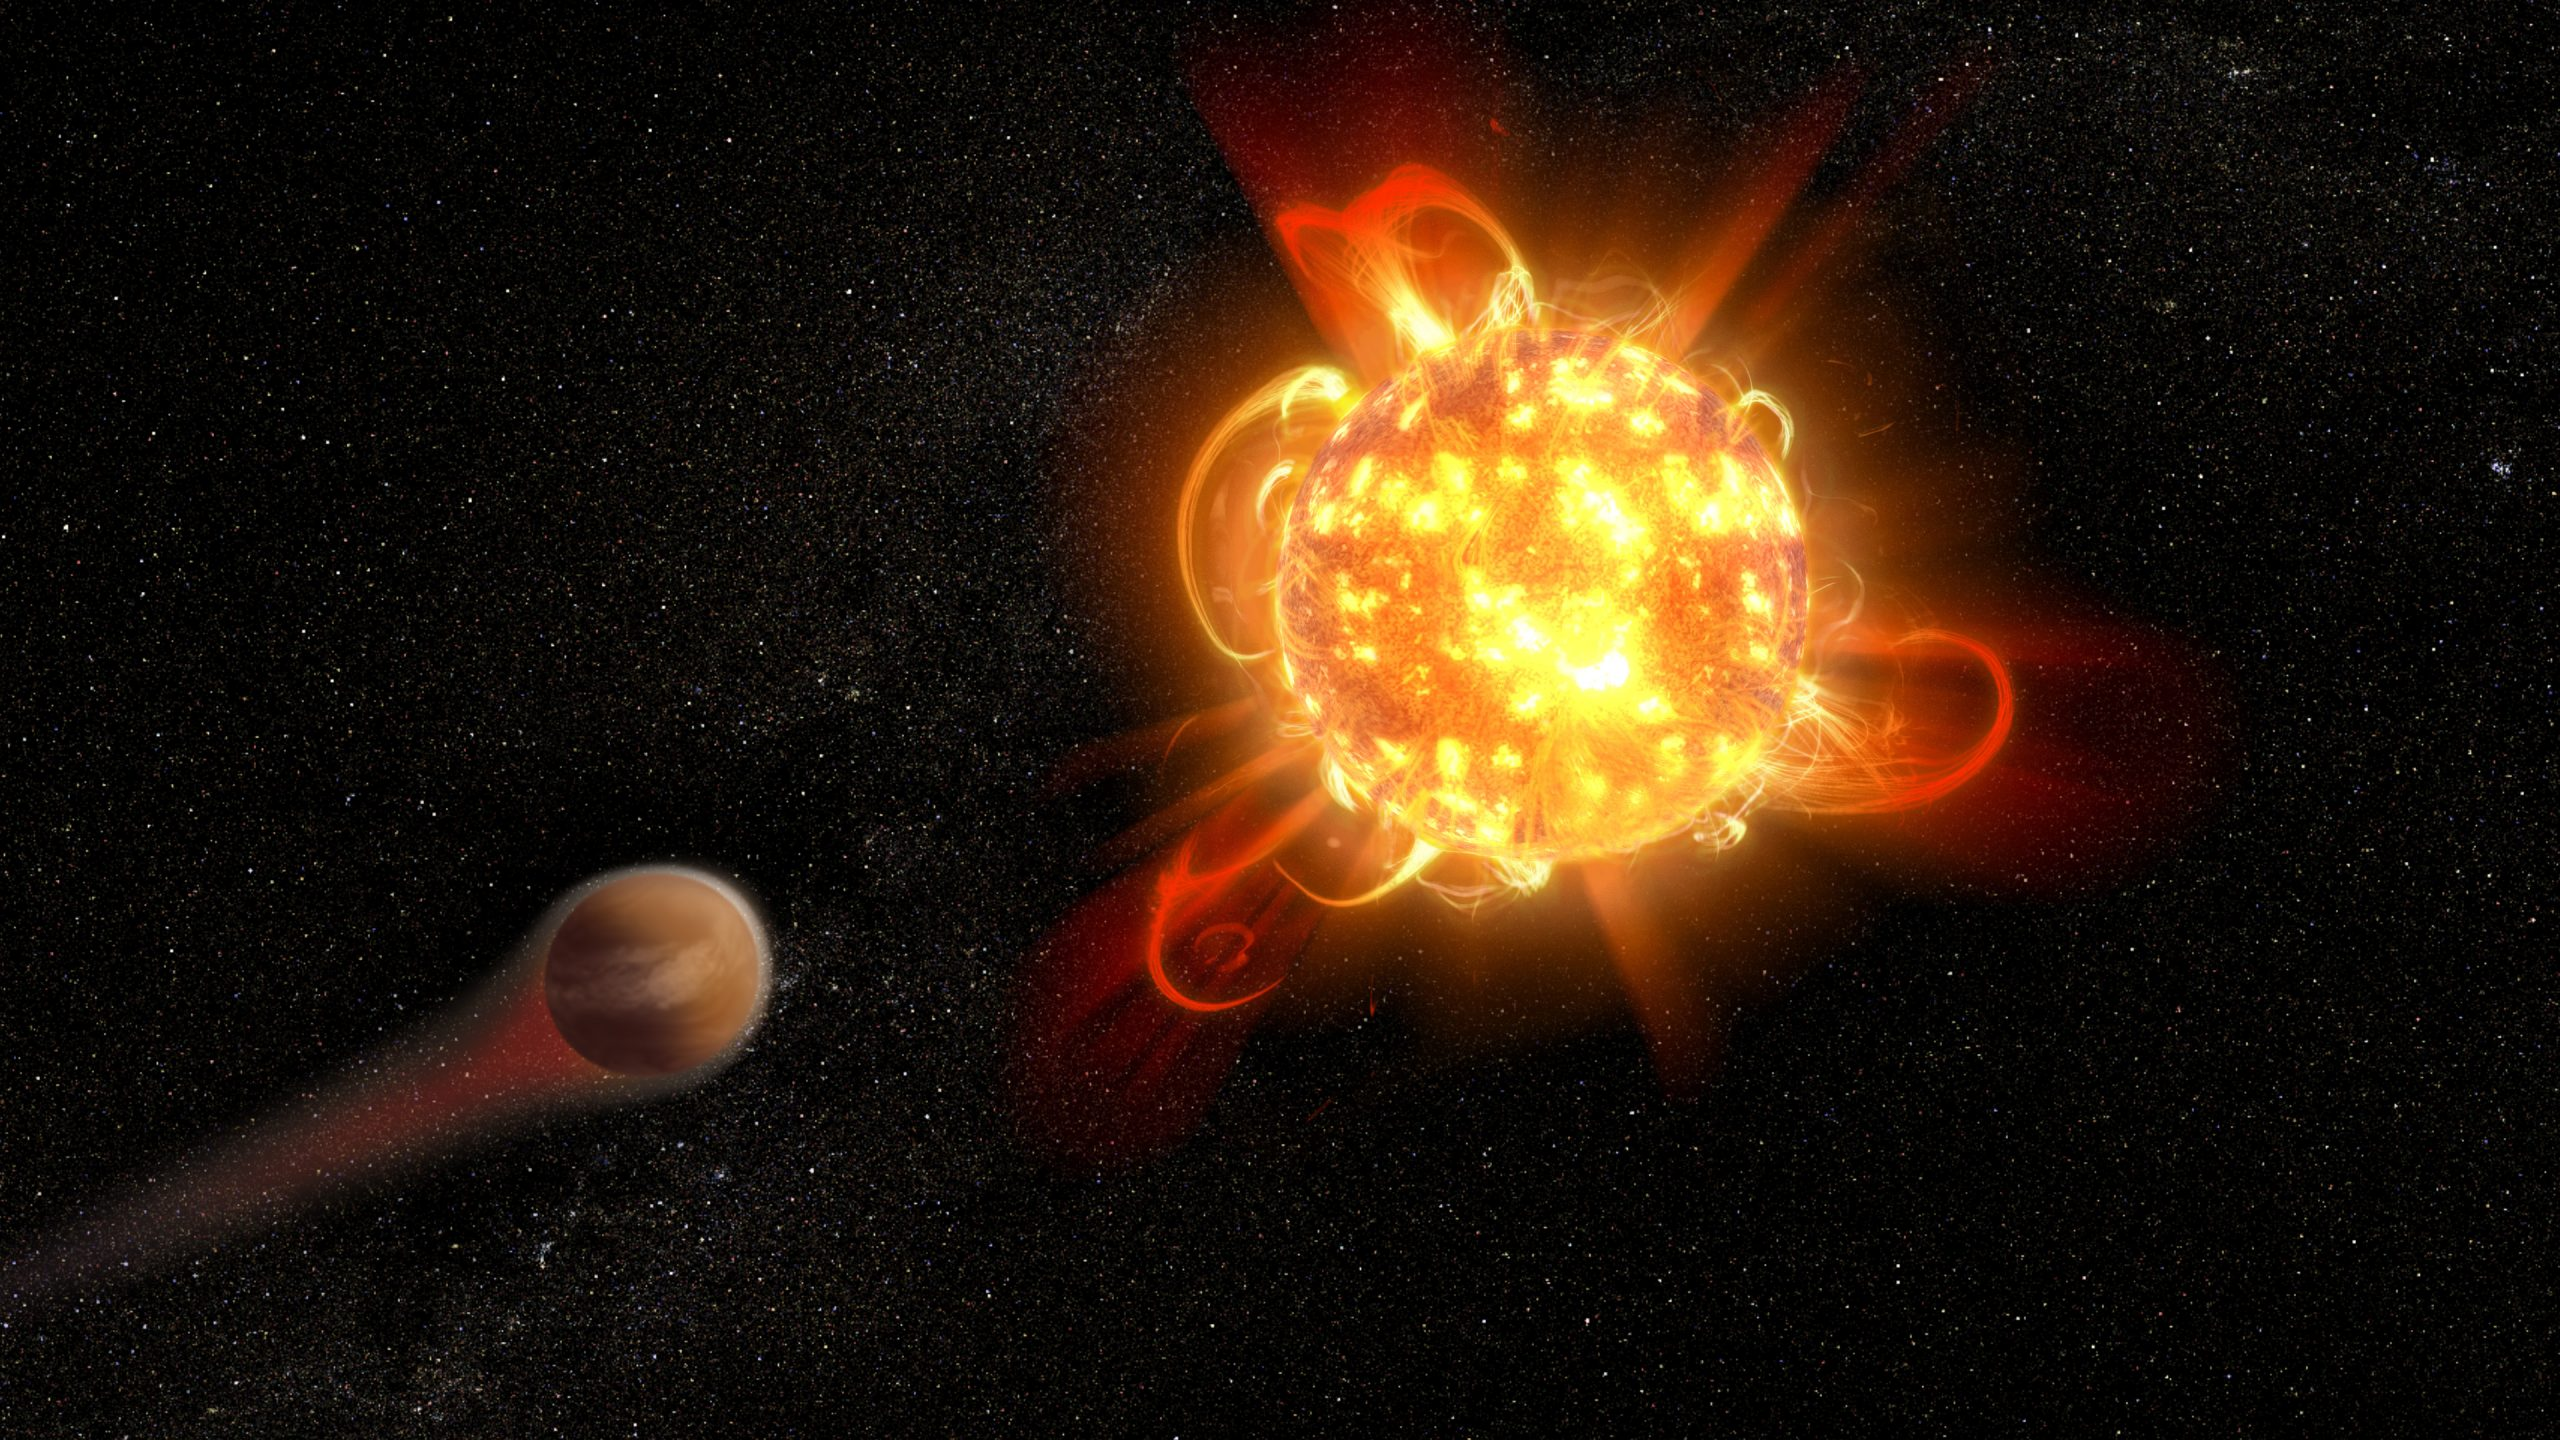 Bright reddish star with large flares and nearby planet.